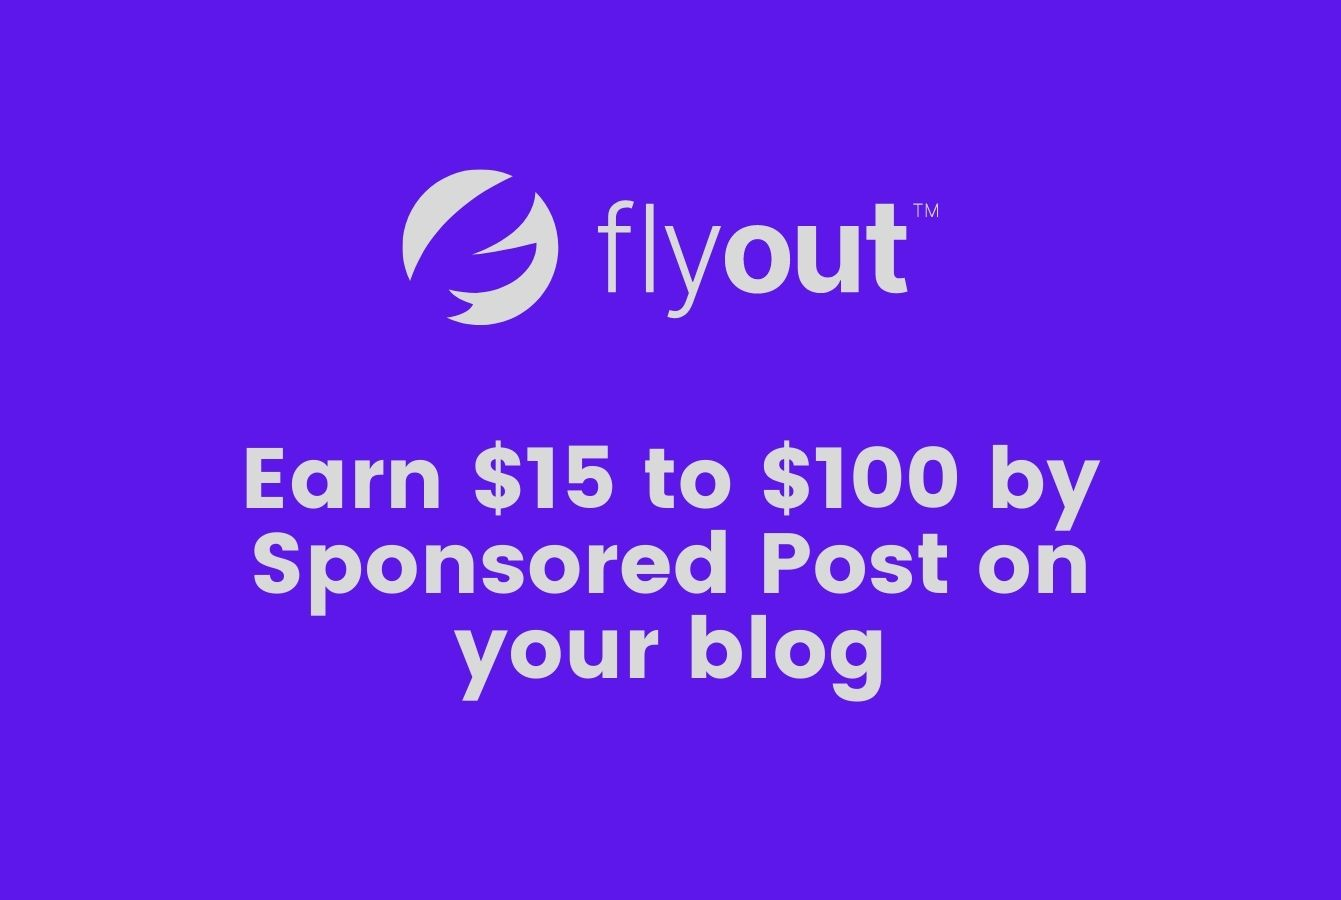 flyout,flyout payment proof,flyout menu,flyout review,flyout payment received,flyout bmx,bmx fllyout,flyout bauen,flyout tricks,flyout account,how to use flyout,flyout approval,add blog on flyout,100 flyout tricks,5 easy flyout tricks,flyout review in hindi,how to earn with flyout,how to flyout skatepark,flyout se paise kaise kamaye,five beginner flyout tricks,fly out,flyout.io,兄弟本色 fly out,fly out tricks,plyo,flyout.io review,youtubepiloten,plyo balls,shane young,powerapps tutorial youtube